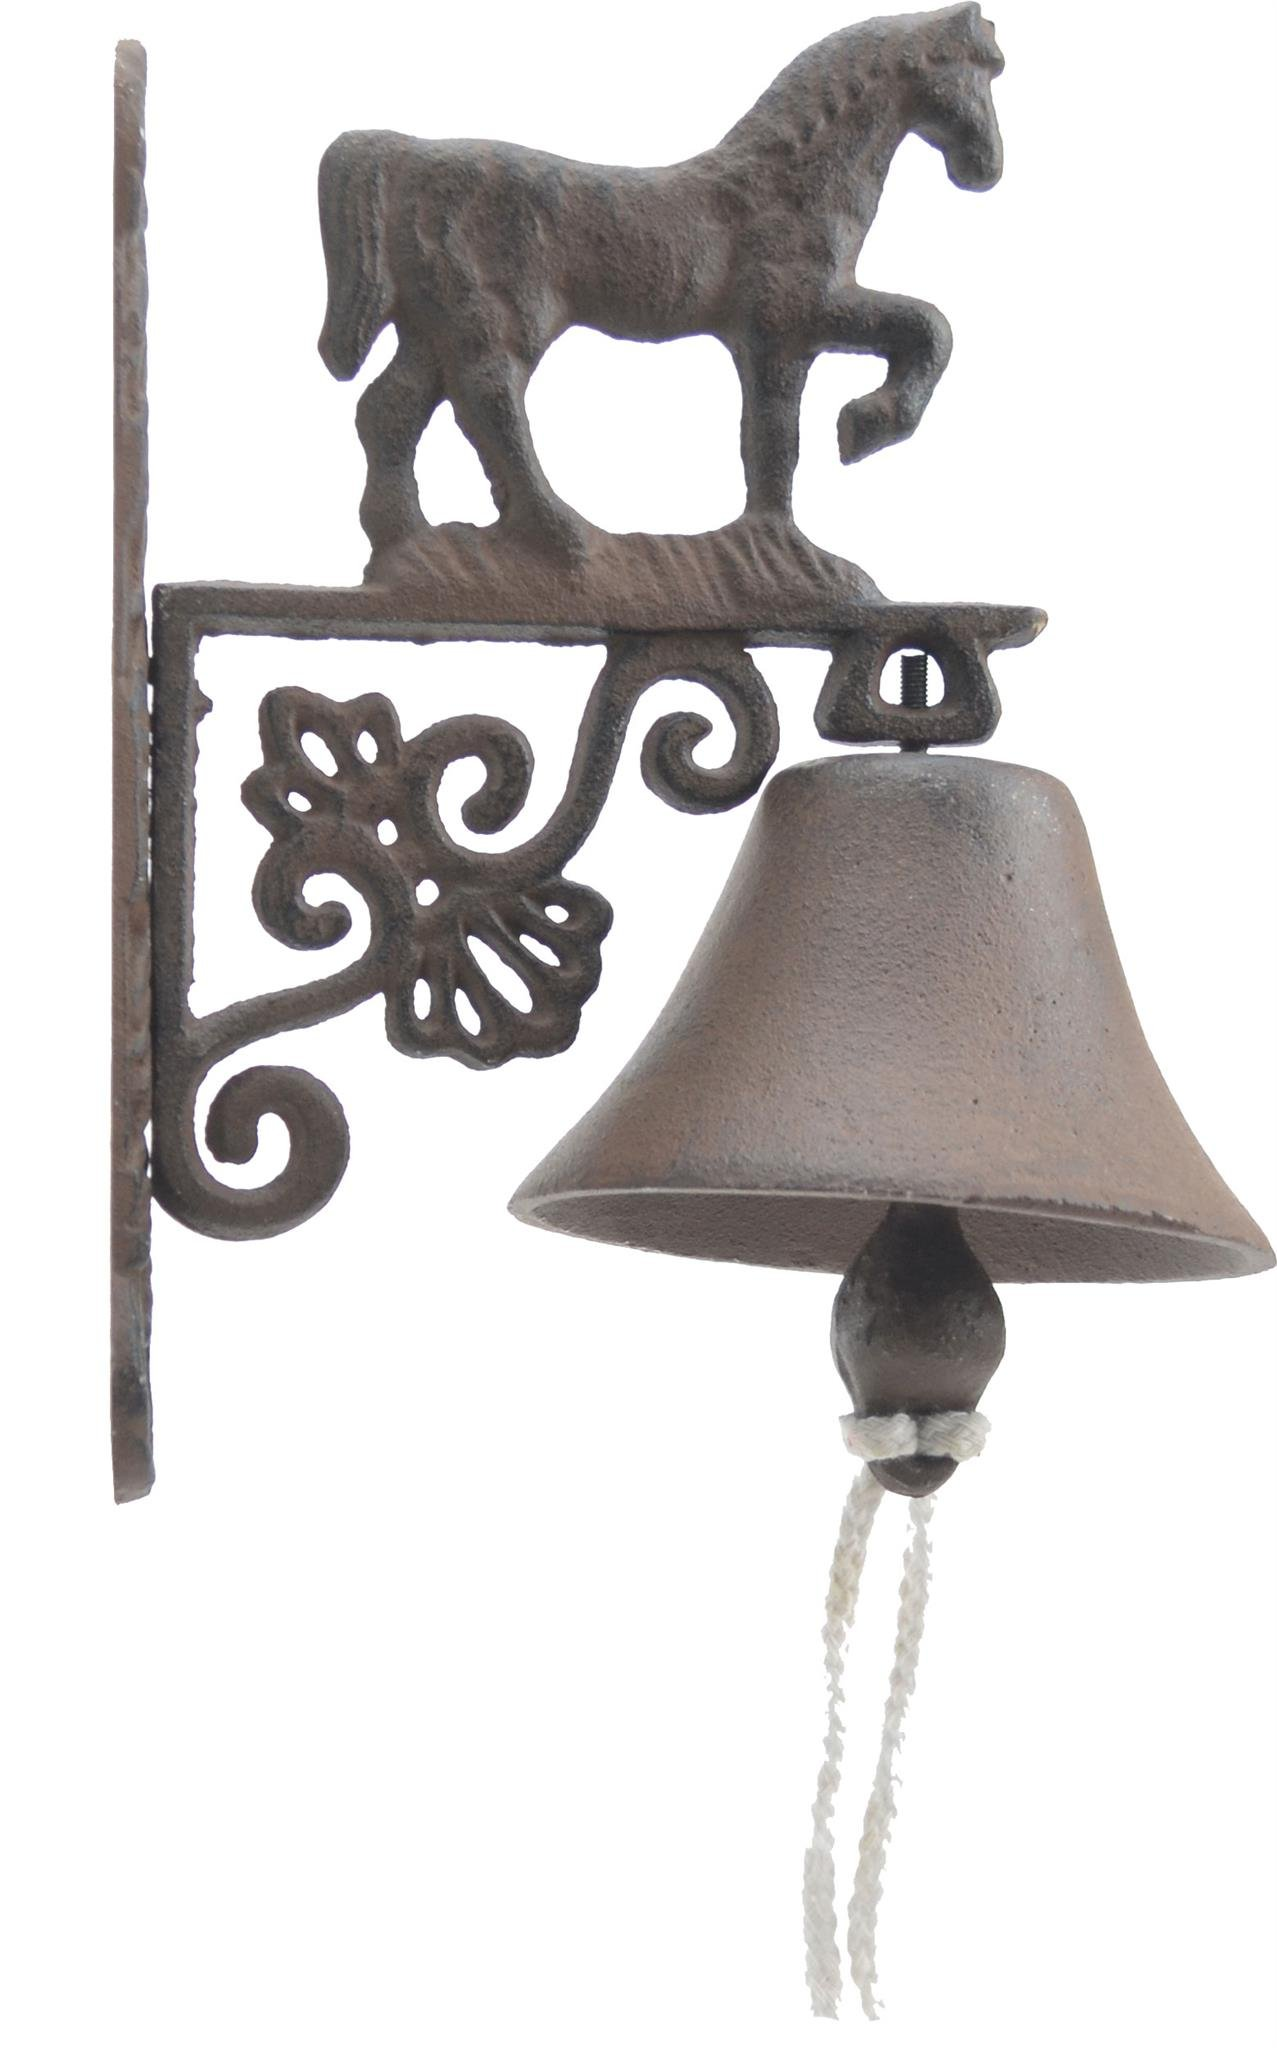 Import Wholesales Cast Iron Dinner Bell Walking Horse Distressed Brown